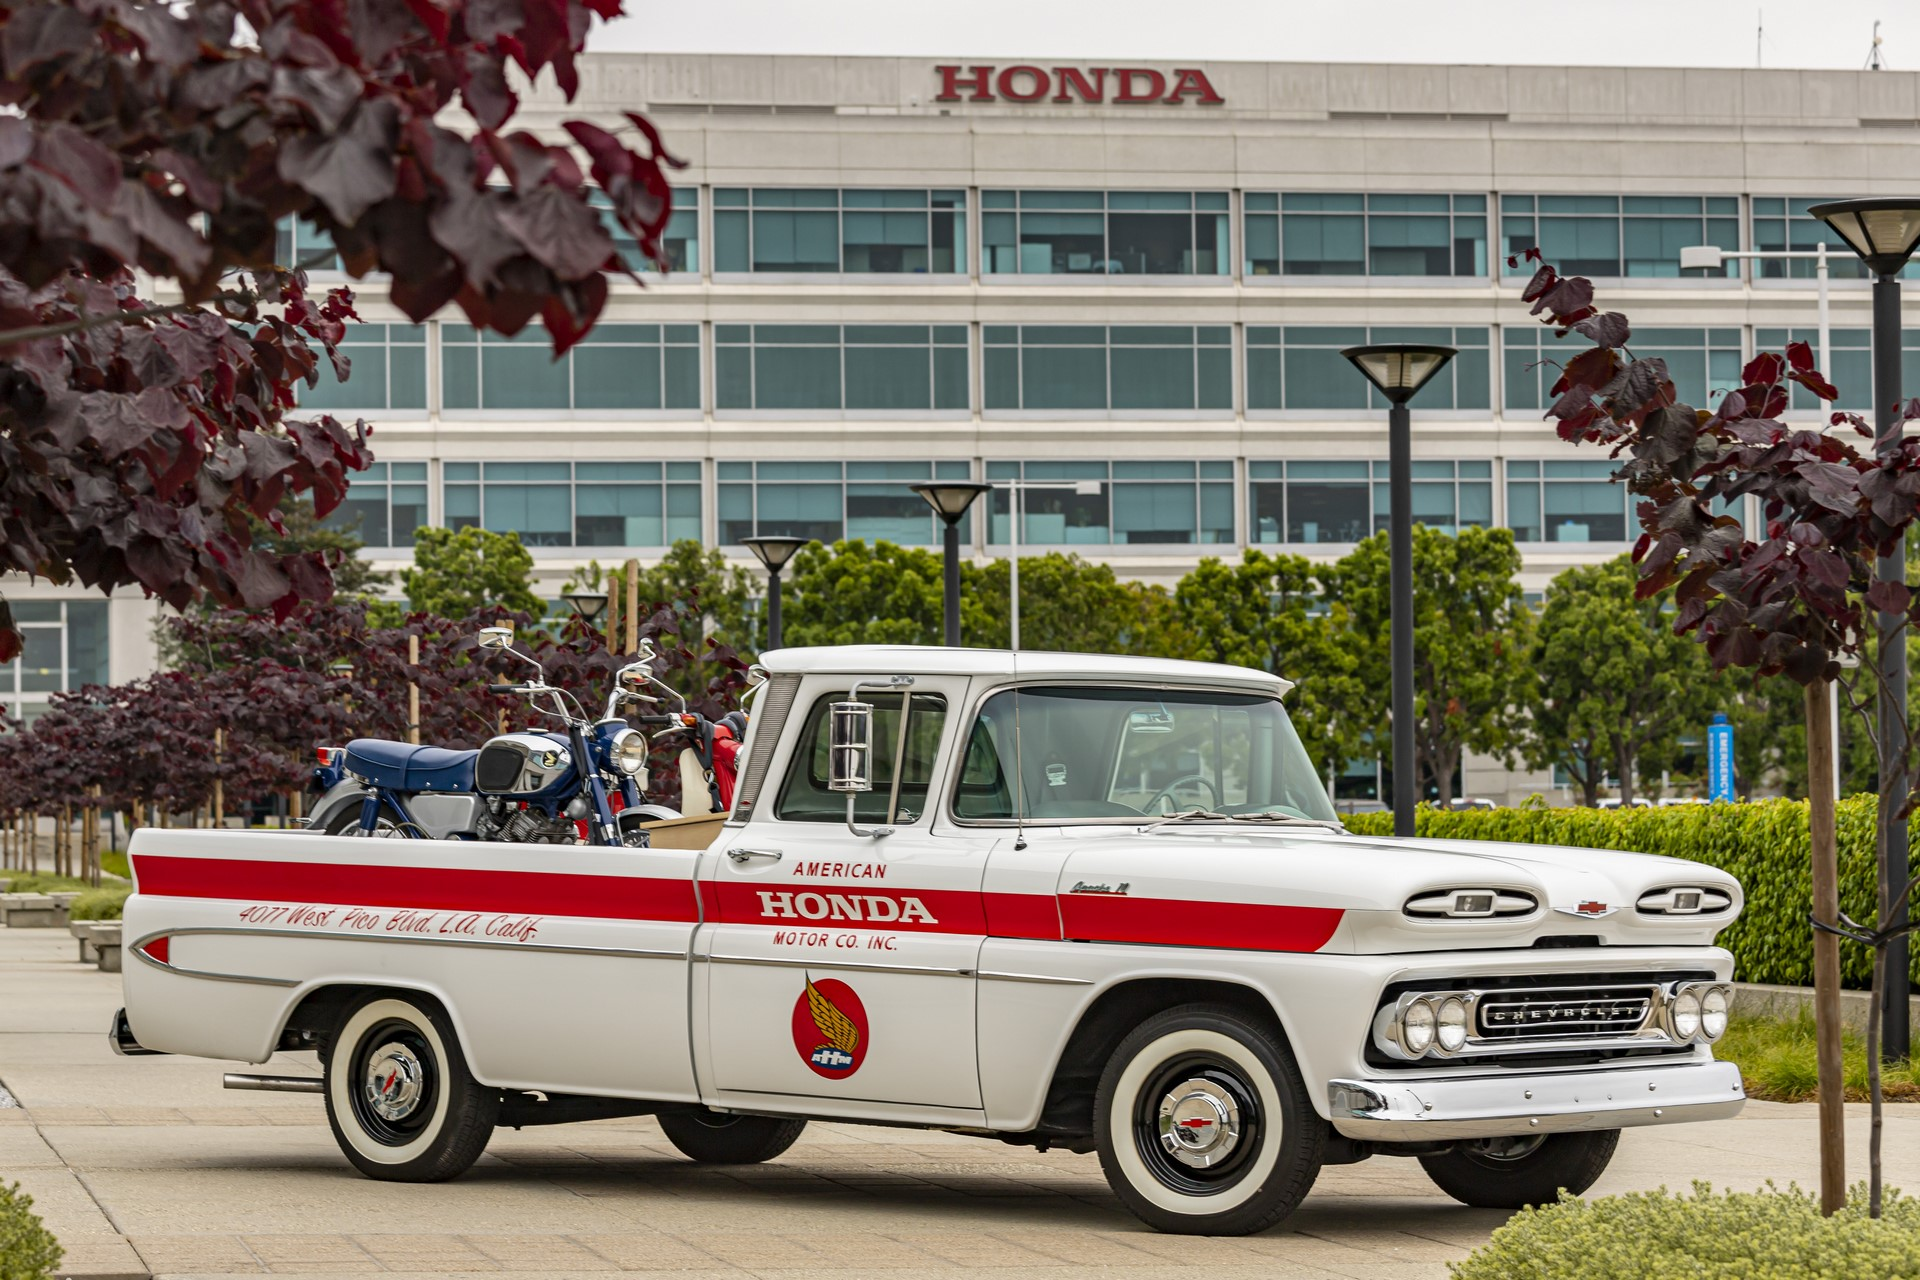 American Honda 60th Anniversary Chevy Delivery Truck